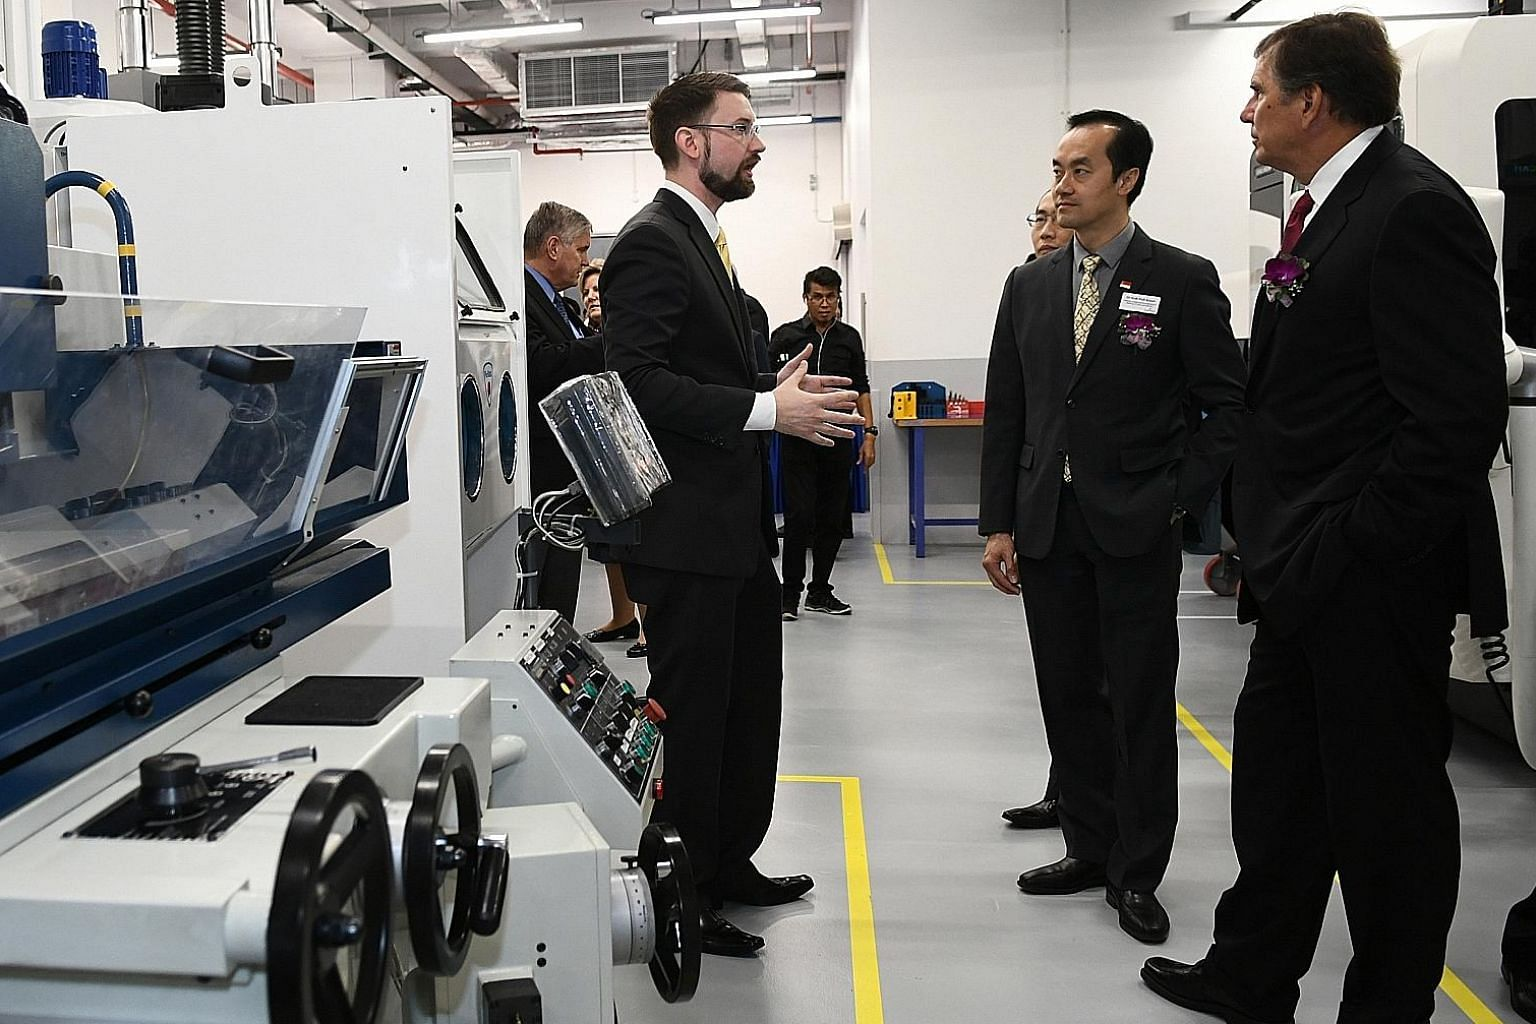 An Emerson spokesman explaining the features of the new additive manufacturing centre to Dr Koh Poh Koon, Minister of State for Trade and Industry, and Emerson chief executive David Farr.